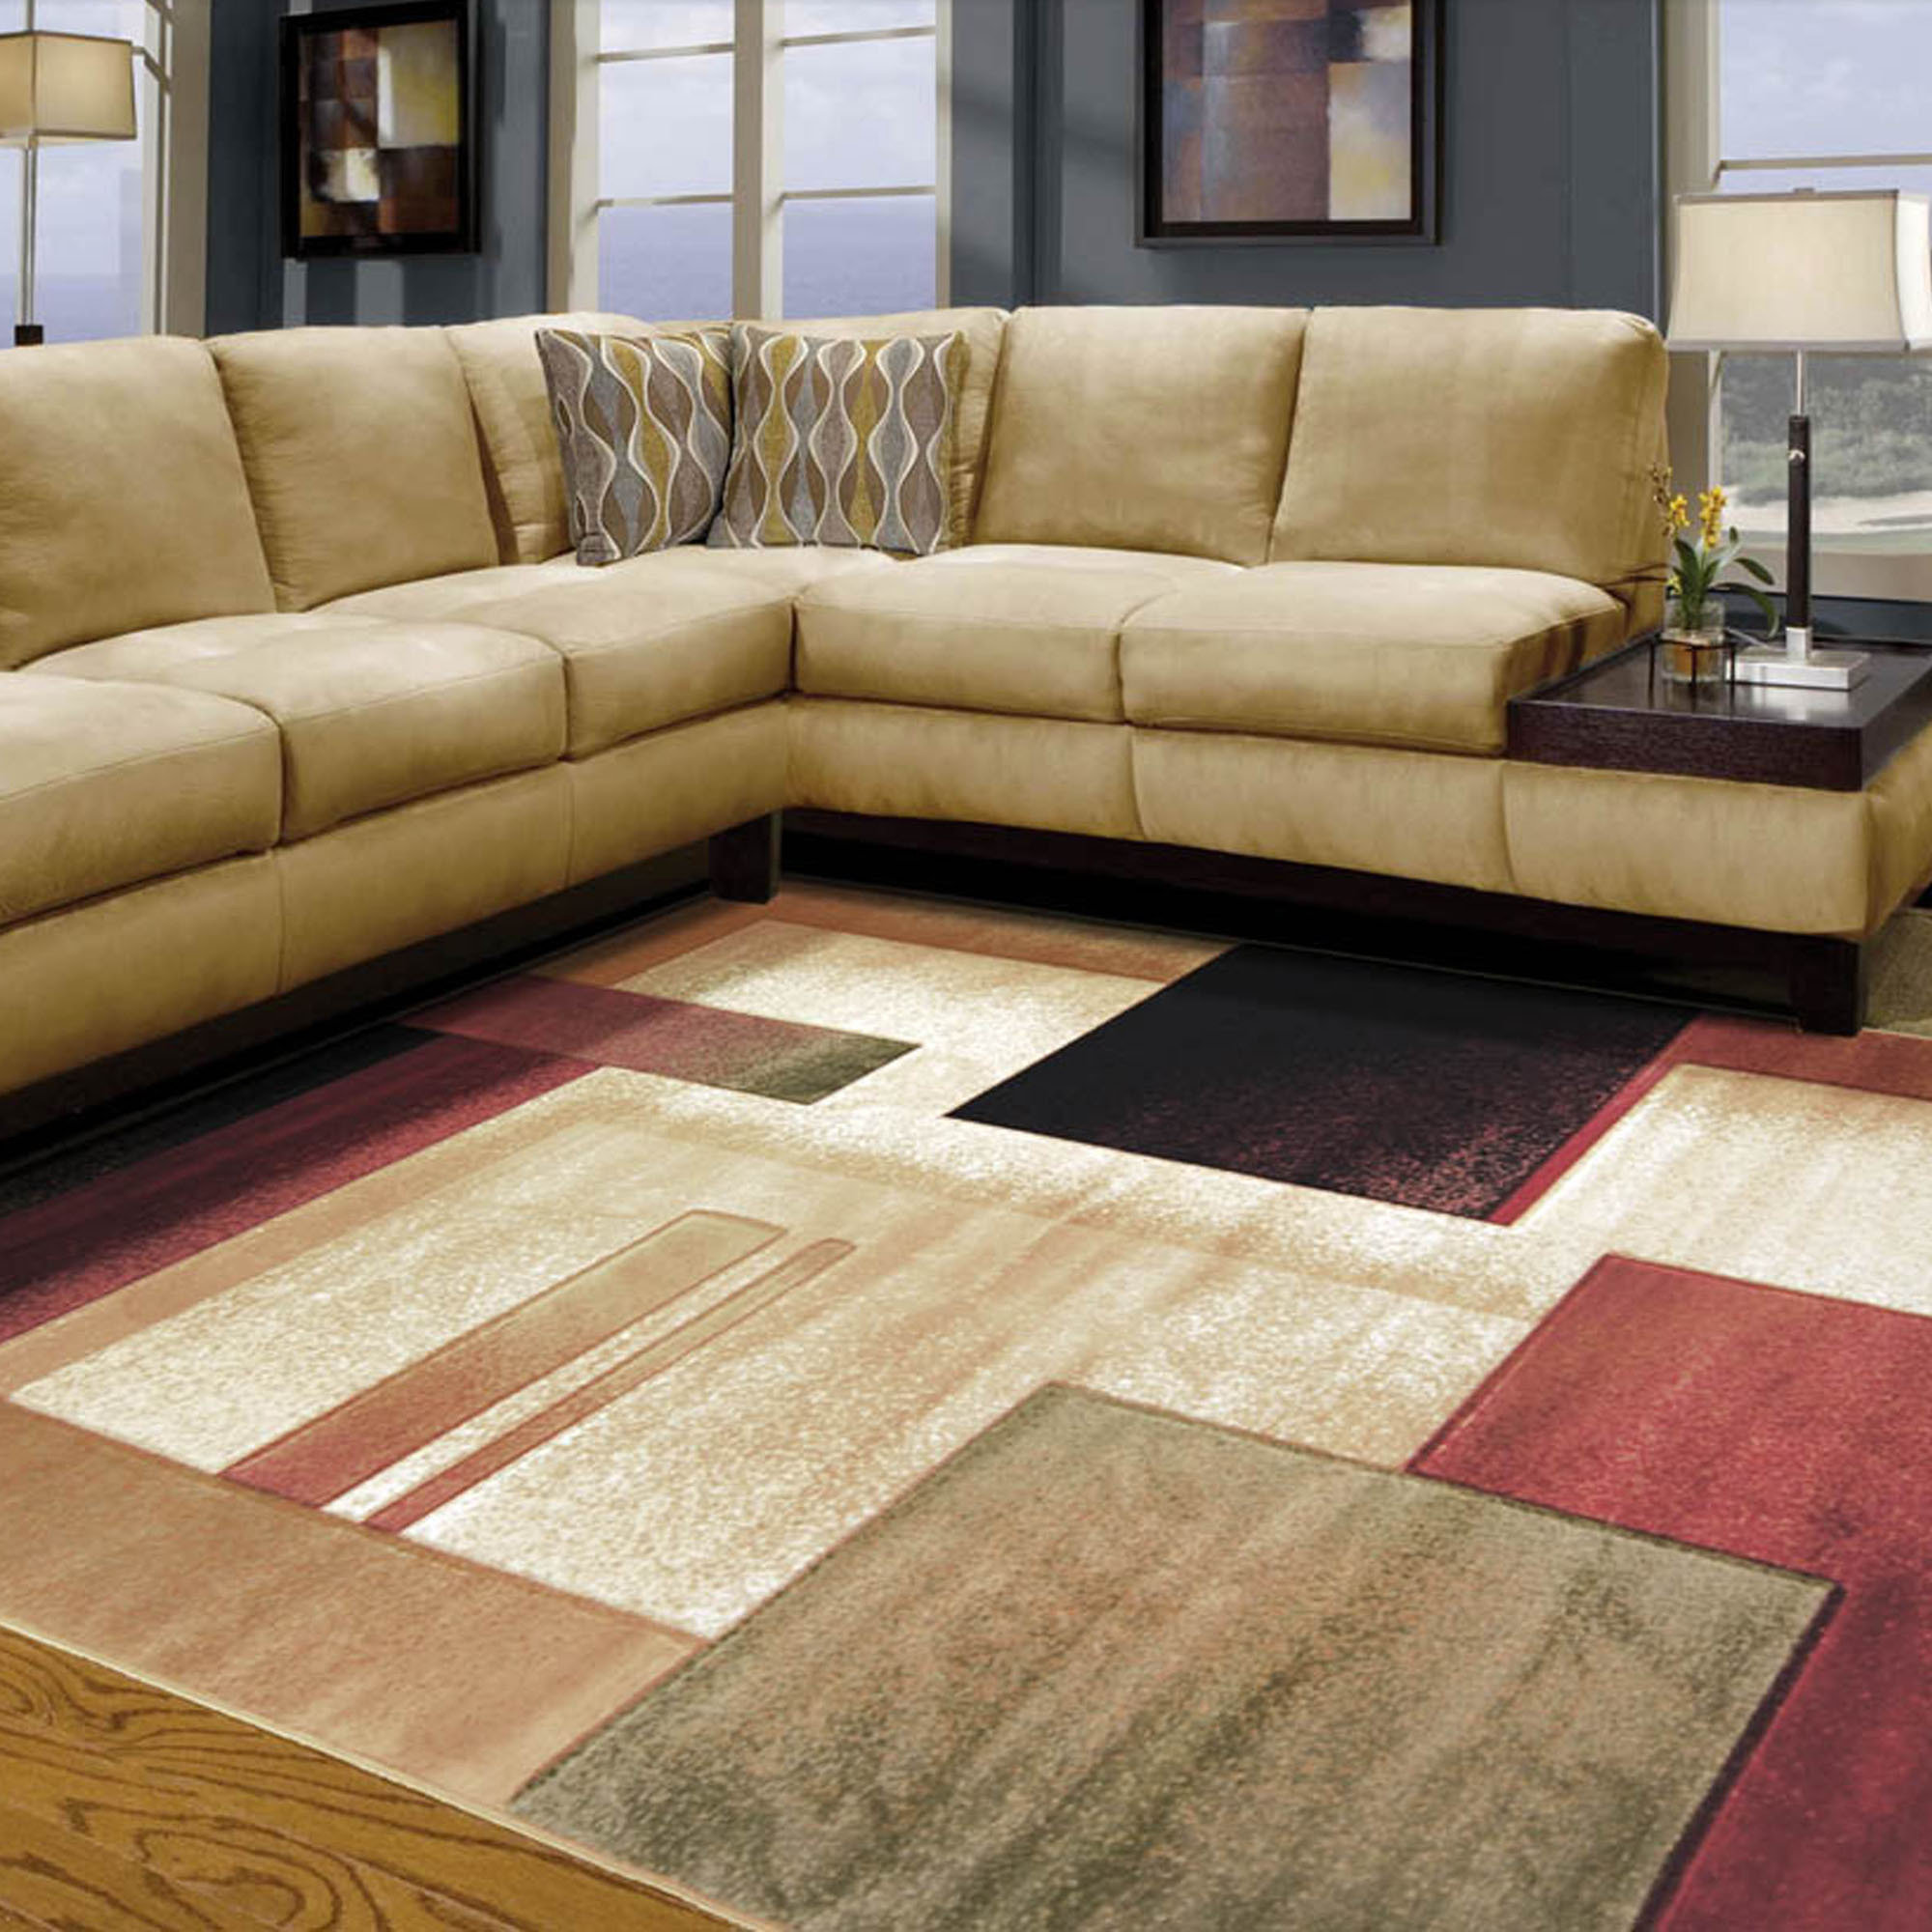 Living room rug - 18 rules for right choosing | Hawk Haven